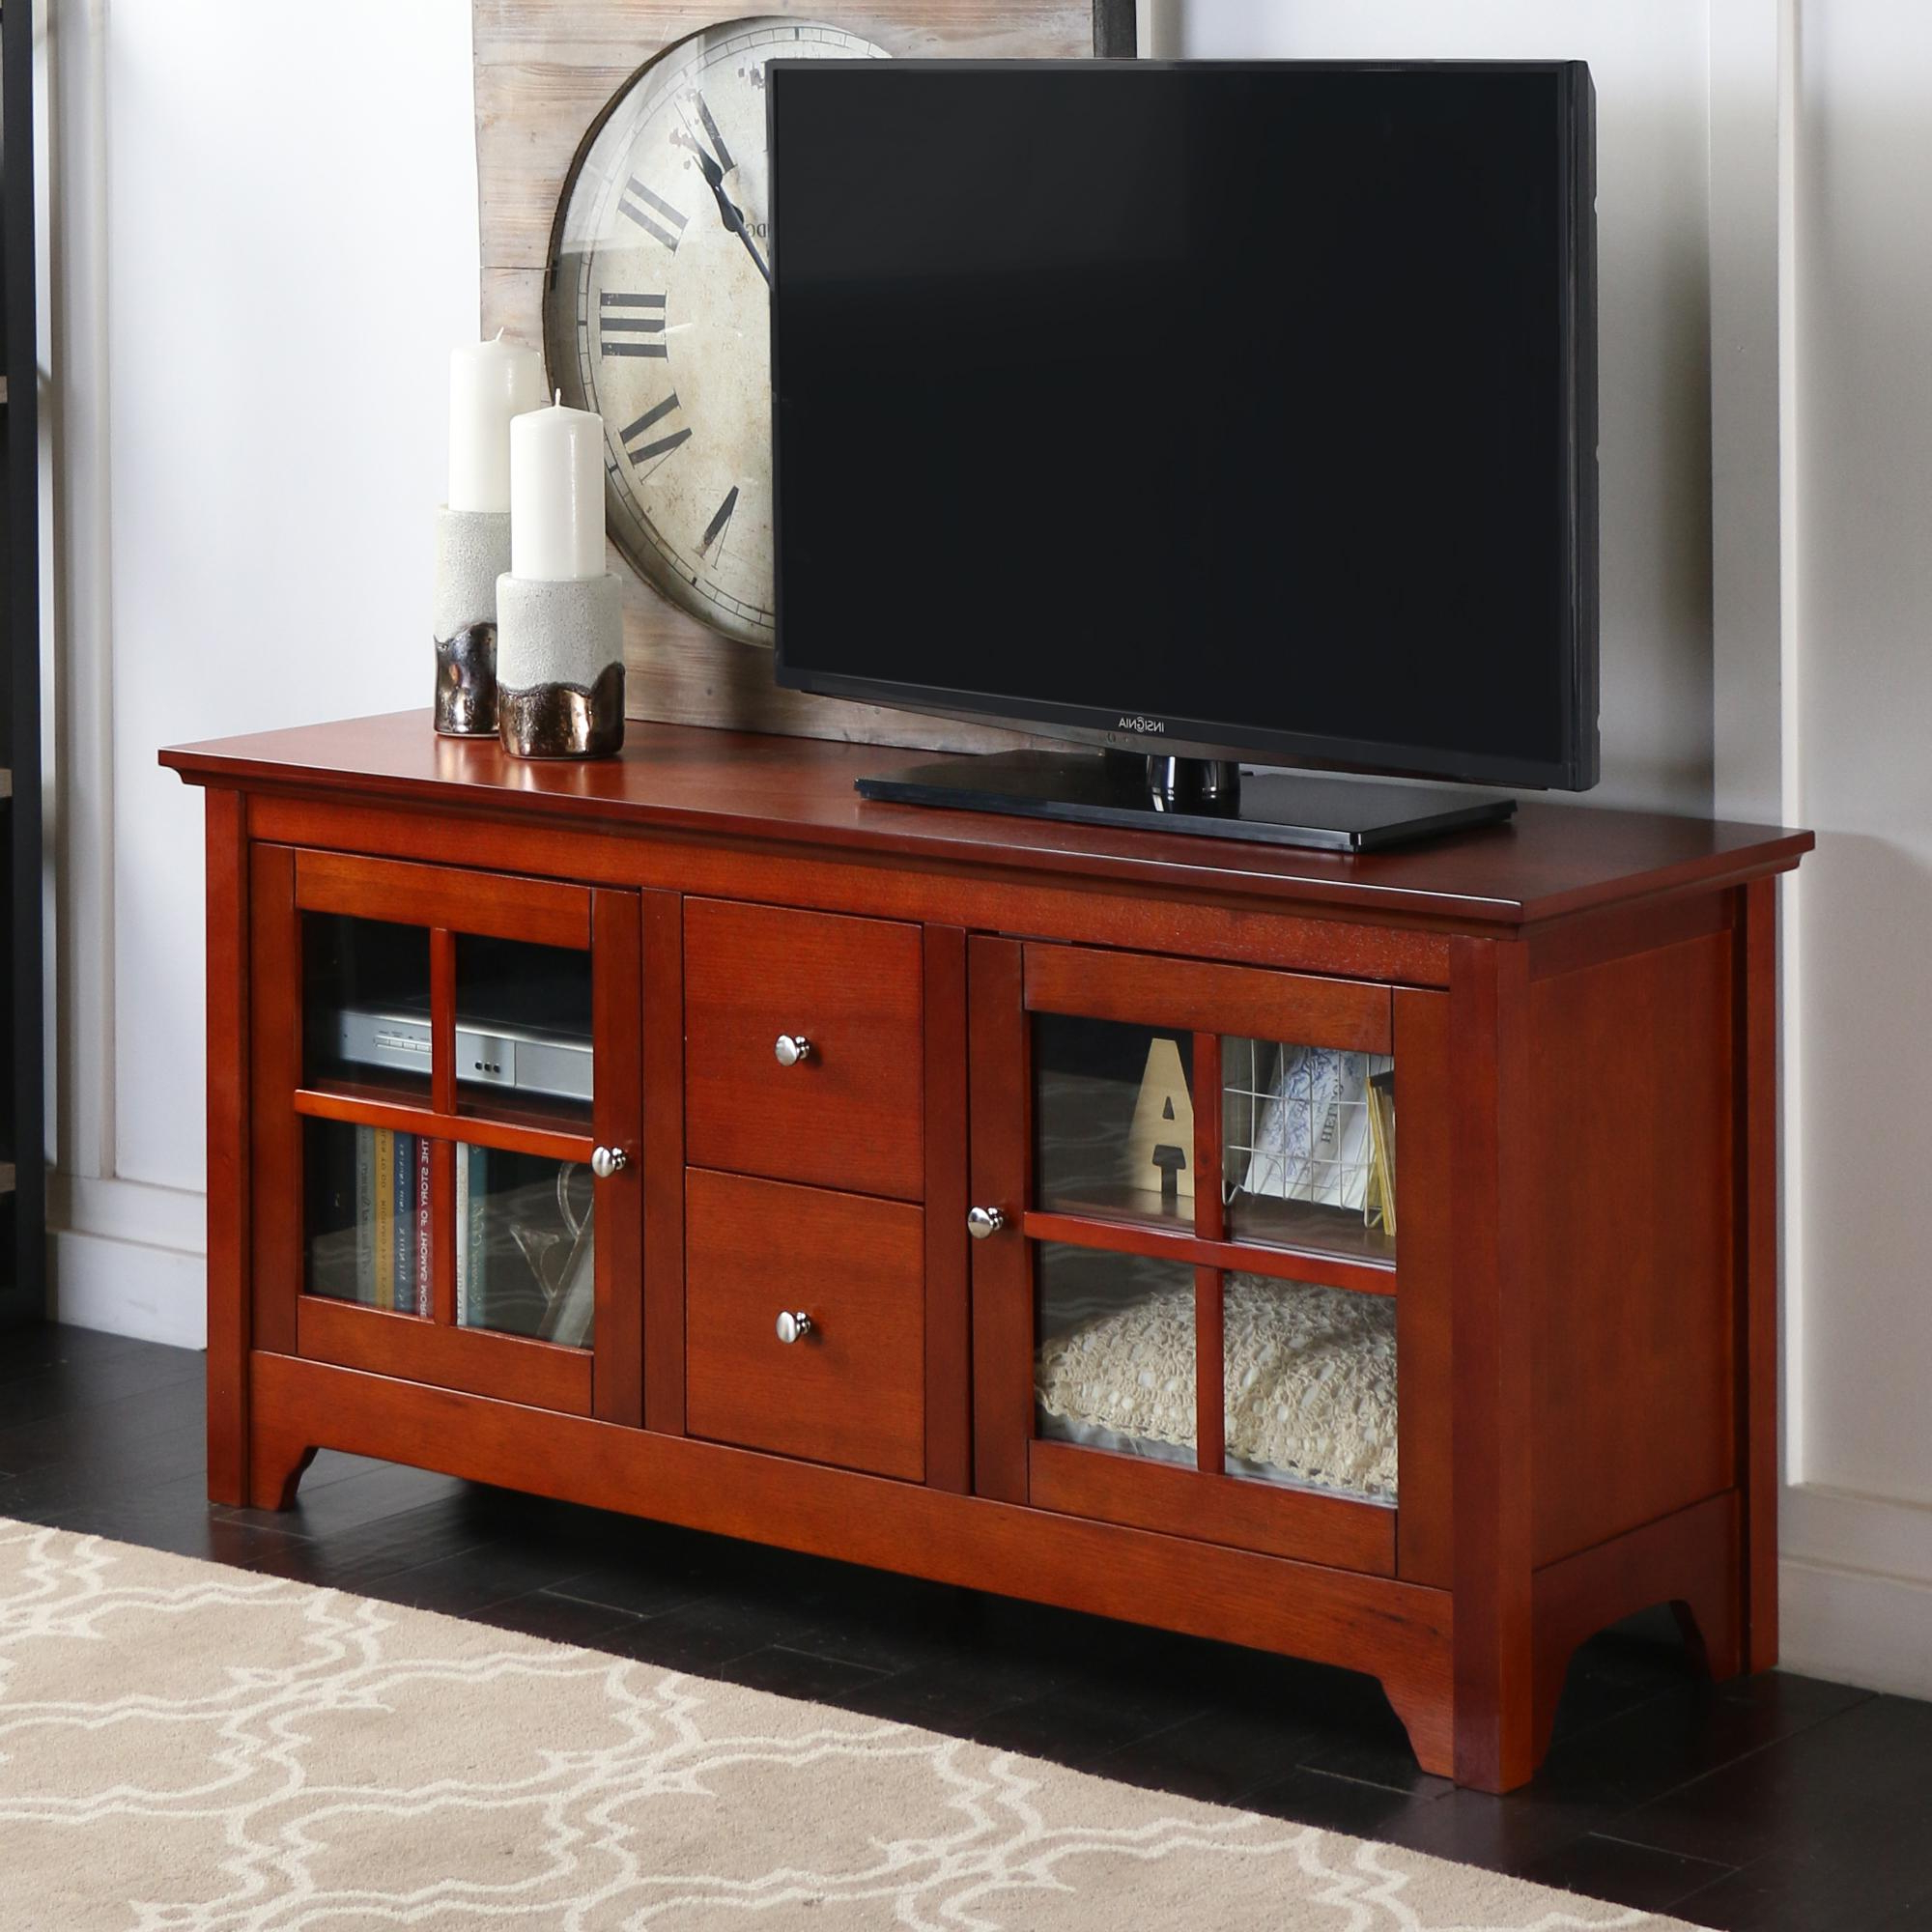 "Wood Tv Stand With Glass Pertaining To Recent Amazon: Walker Edison 53"" Wood Tv Stand Console With Storage (View 13 of 20)"